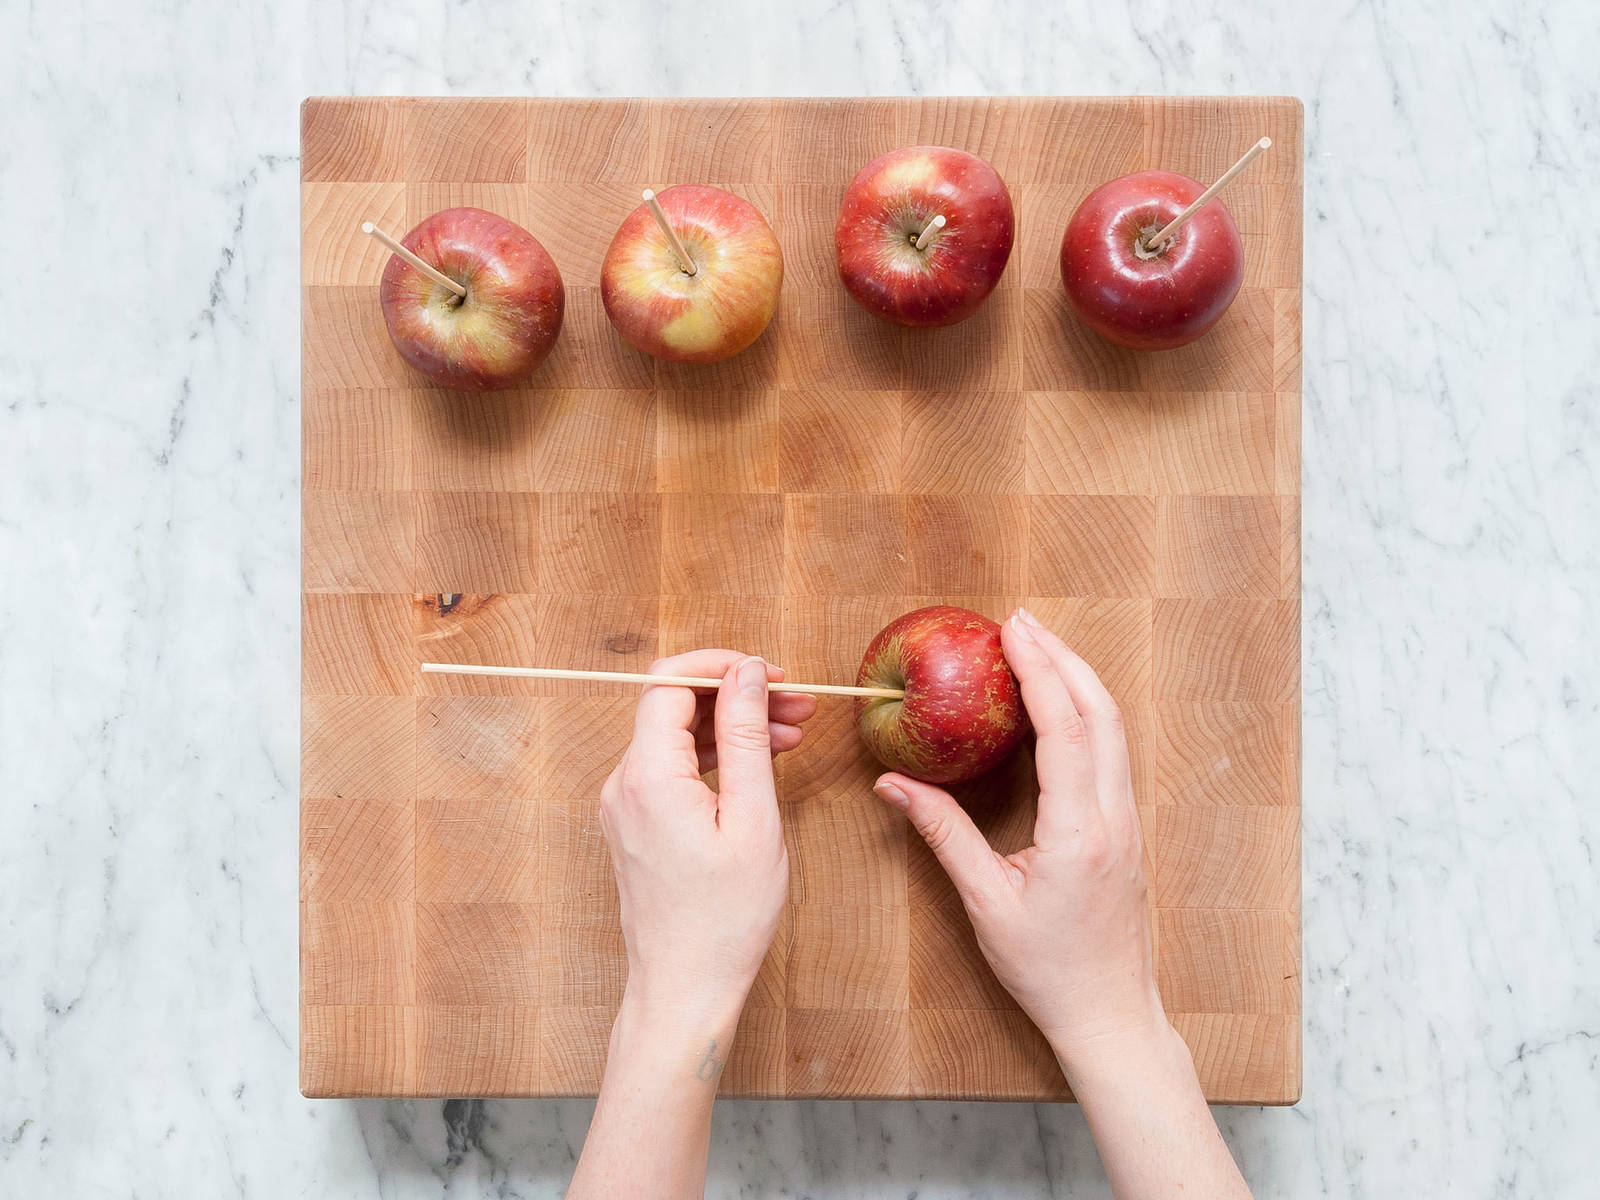 Wash apples, remove stems, and press a wooden skewers into each stem-end of the apples. Set aside.